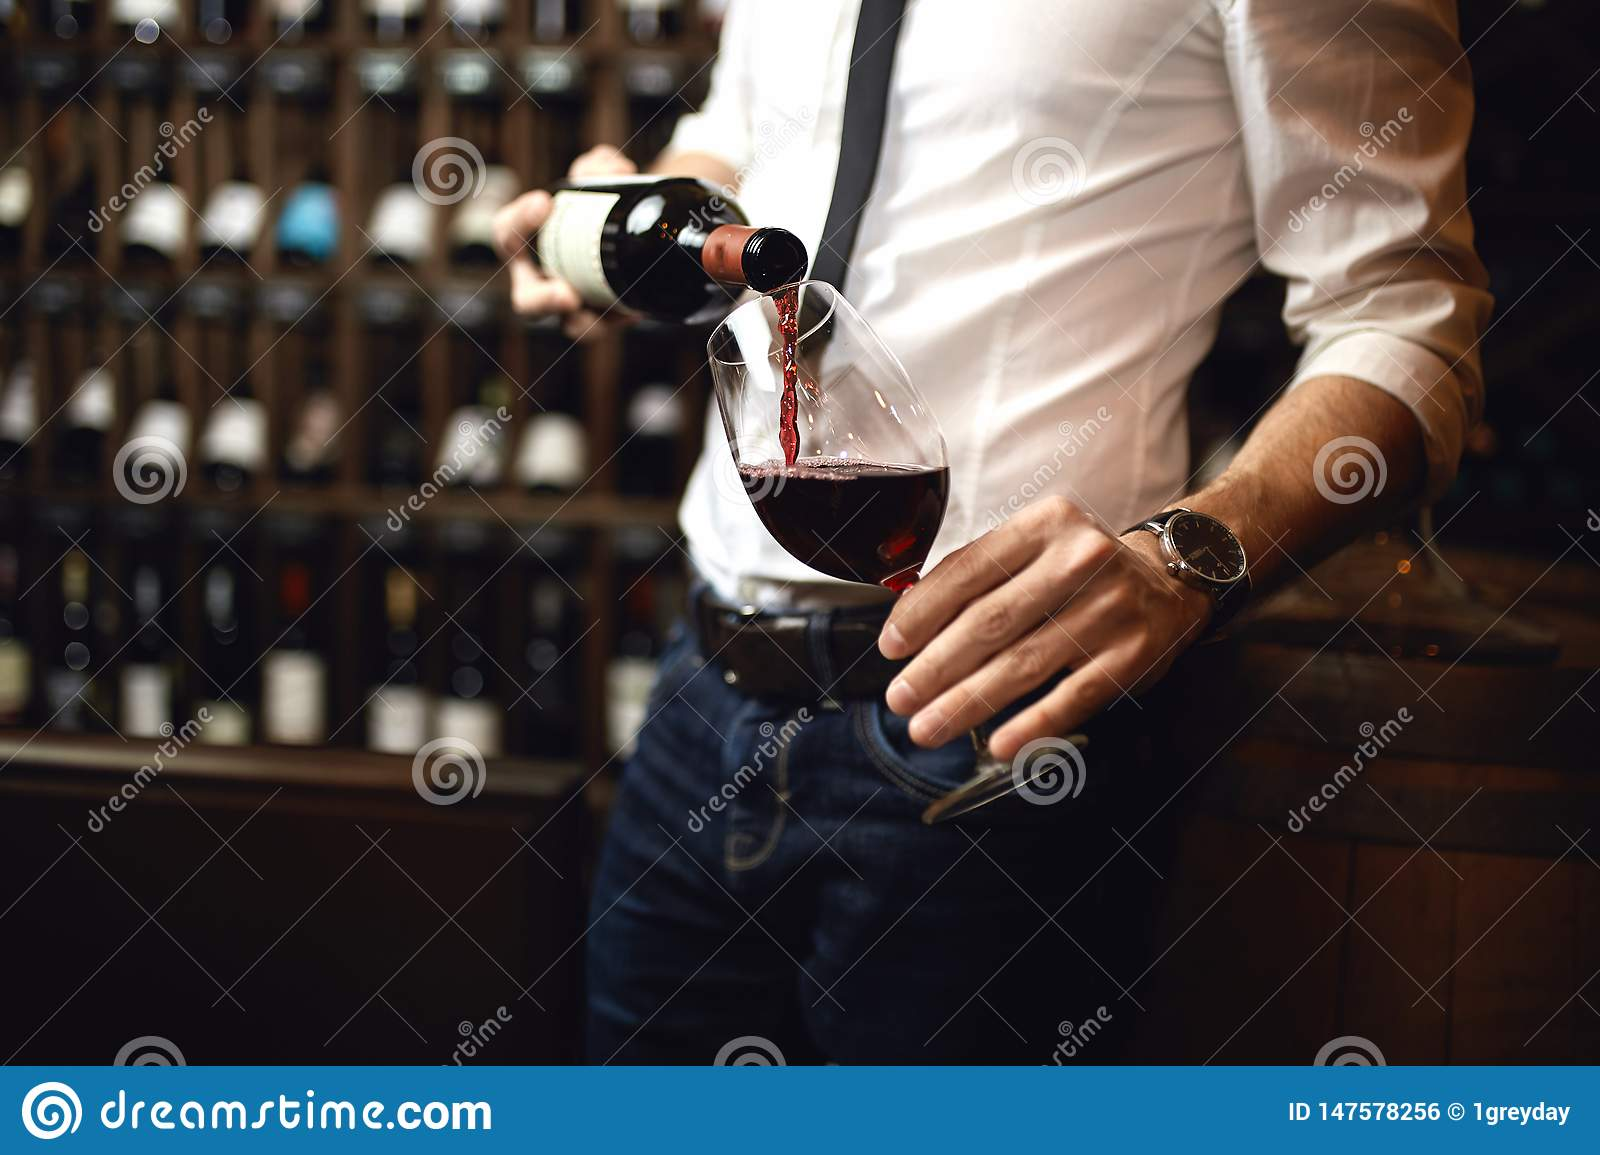 Focus on the bottle of red wine